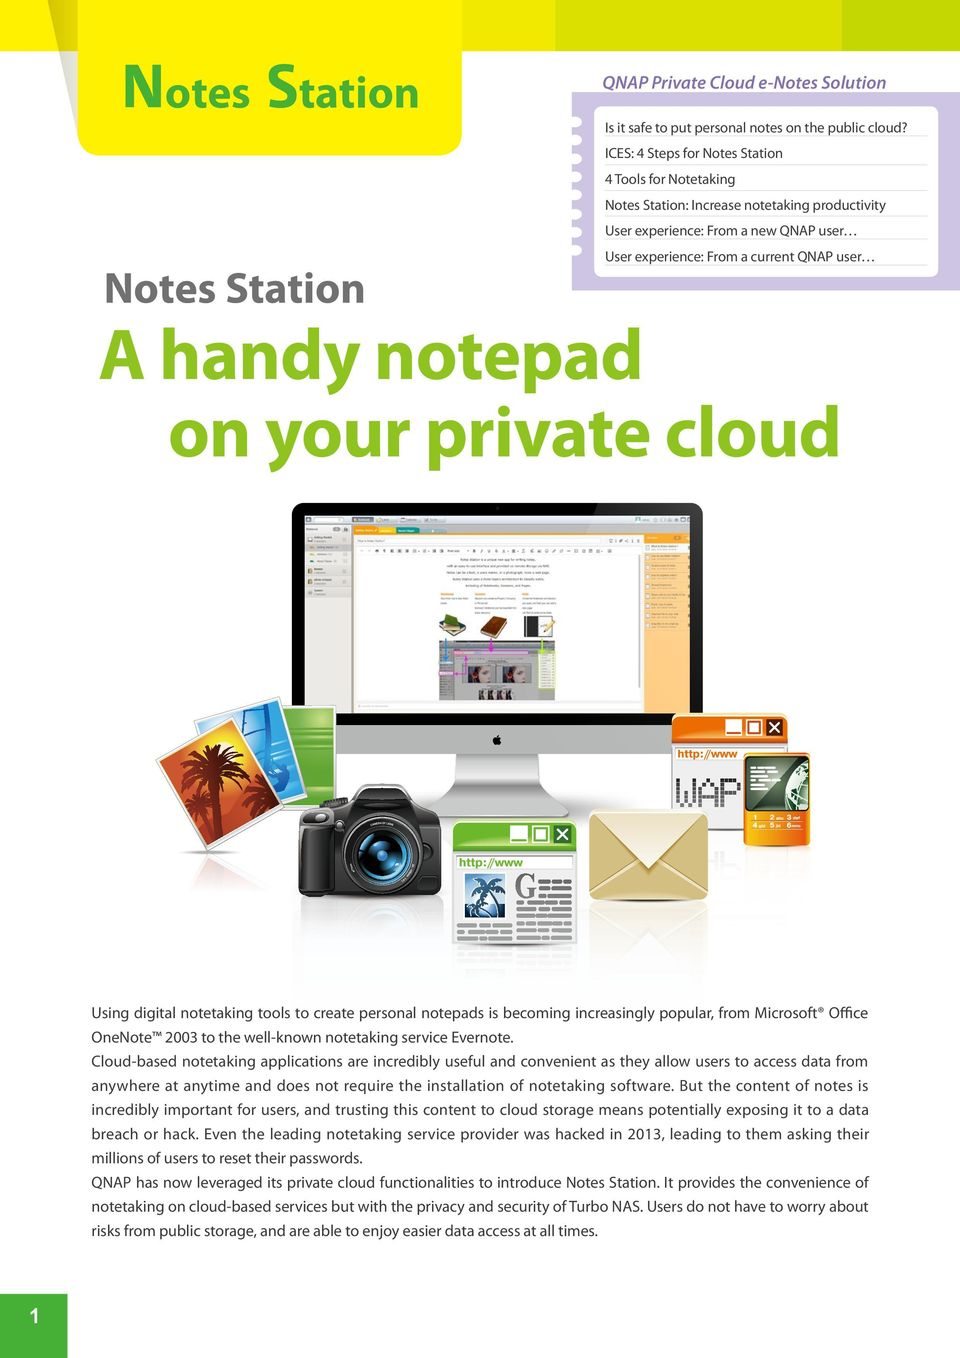 on your private cloud Using digital notetaking tools to create personal notepads is becoming increasingly popular, from Microsoft Office OneNote 2003 to the well-known notetaking service Evernote.